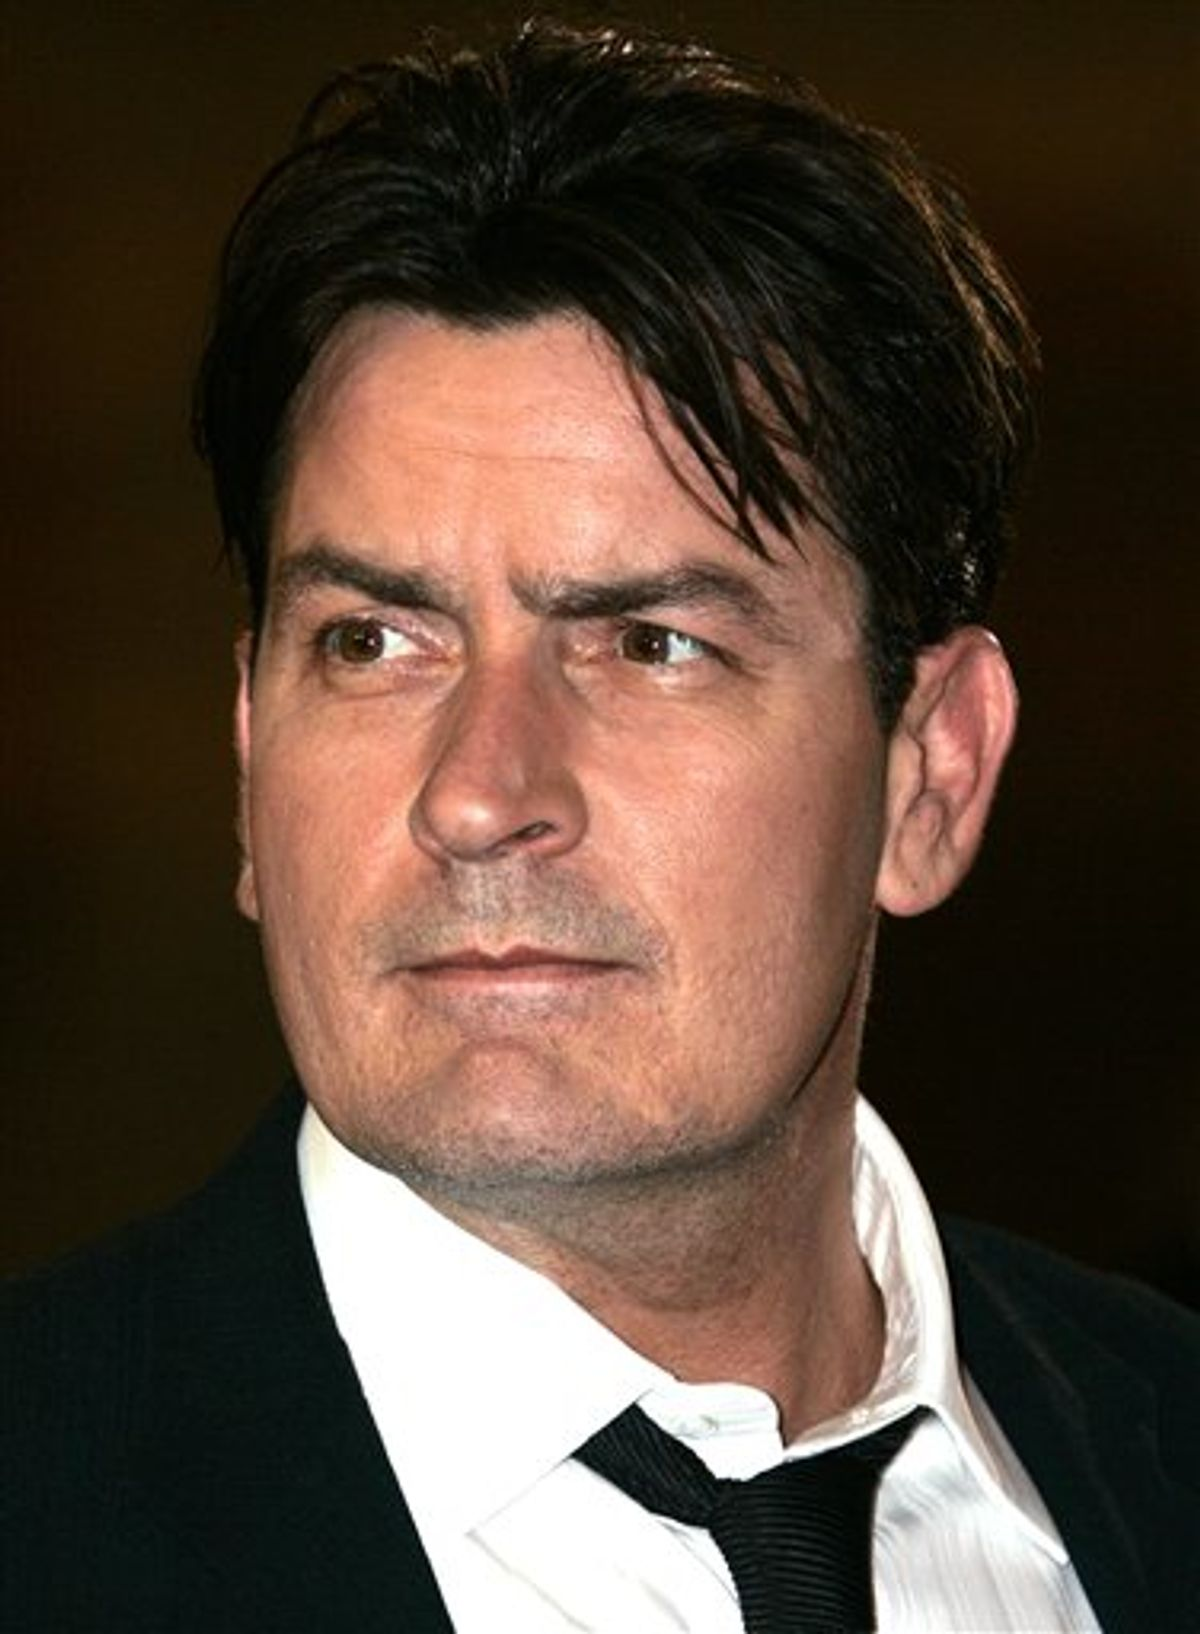 """FILE - This May 21, 2006 file photo shows actor Charlie Sheen as he arrives for the screening of the film """"Platoon,""""at the 59th International Film Festival in Cannes, France. Los Angeles Superior Court Judge Allan Goodman ruled Wednesday, June 15, 2011, that Sheen's $100 million lawsuit over his firing from """"Two and a Half Men"""" should be handled through private arbitration rather than in a public courtroom. (AP Photo/Kirsty Wigglesworth, File) (AP)"""